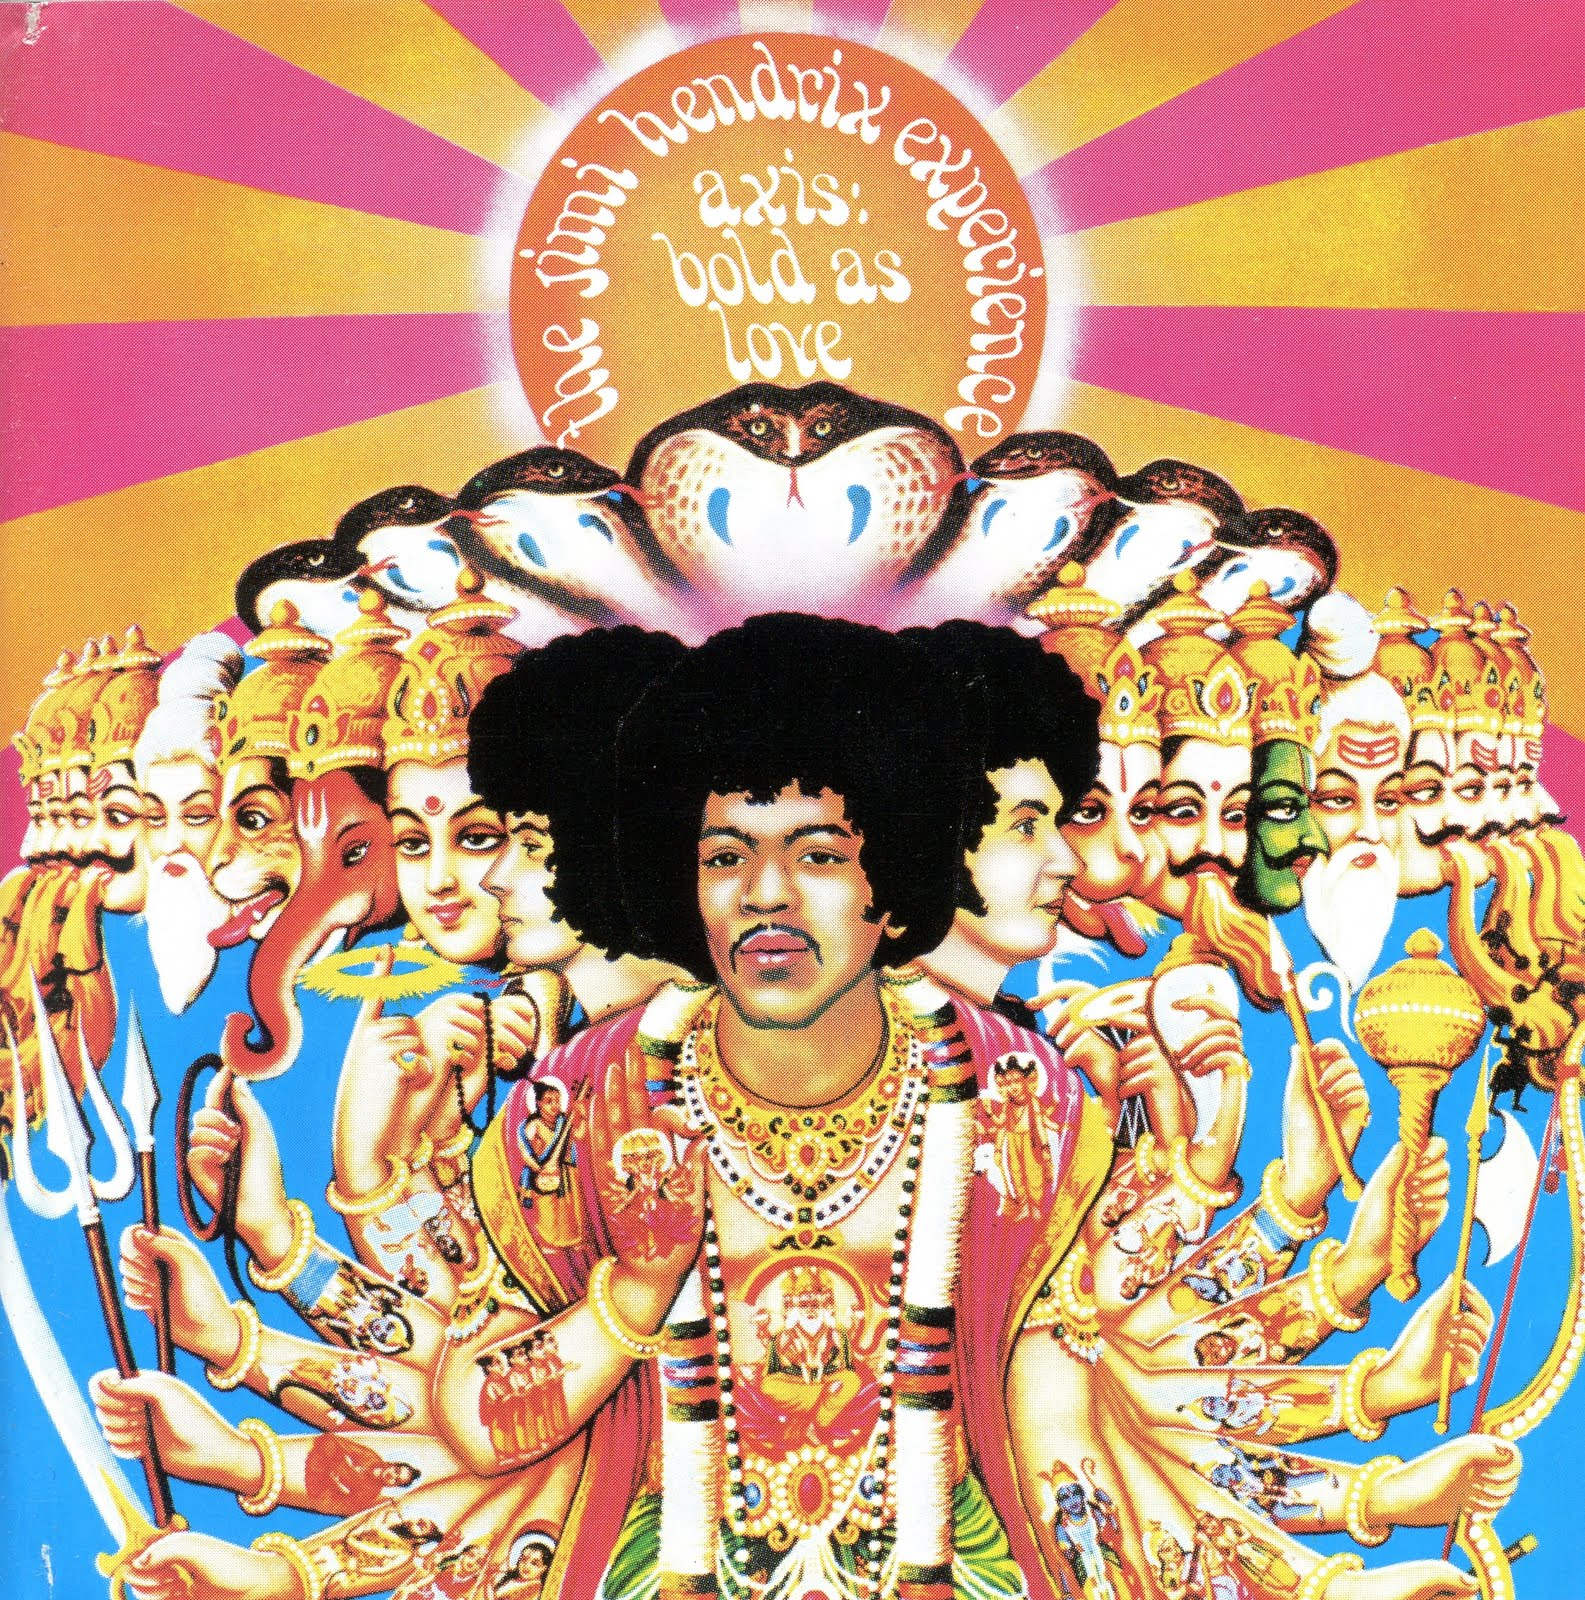 theredtele℘honε.: Psychedelic album cover art.  theredtele℘ho...